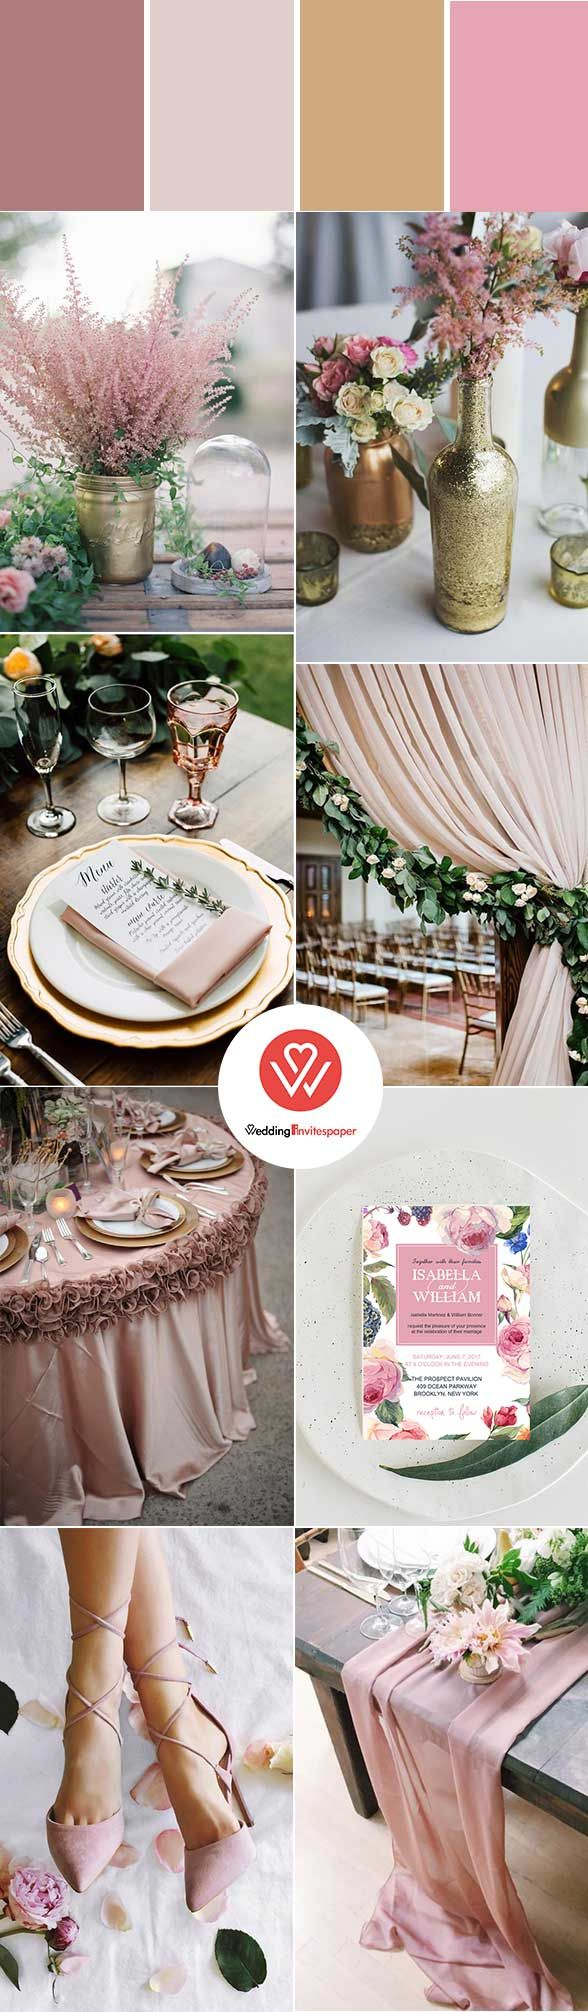 GLAMOROUS RUSTIC FALL WEDDING COLOR PALETTES: ROSE PINK INCORPORATED WITH WEDDING INVITATIONS - Wedding Invites Paper